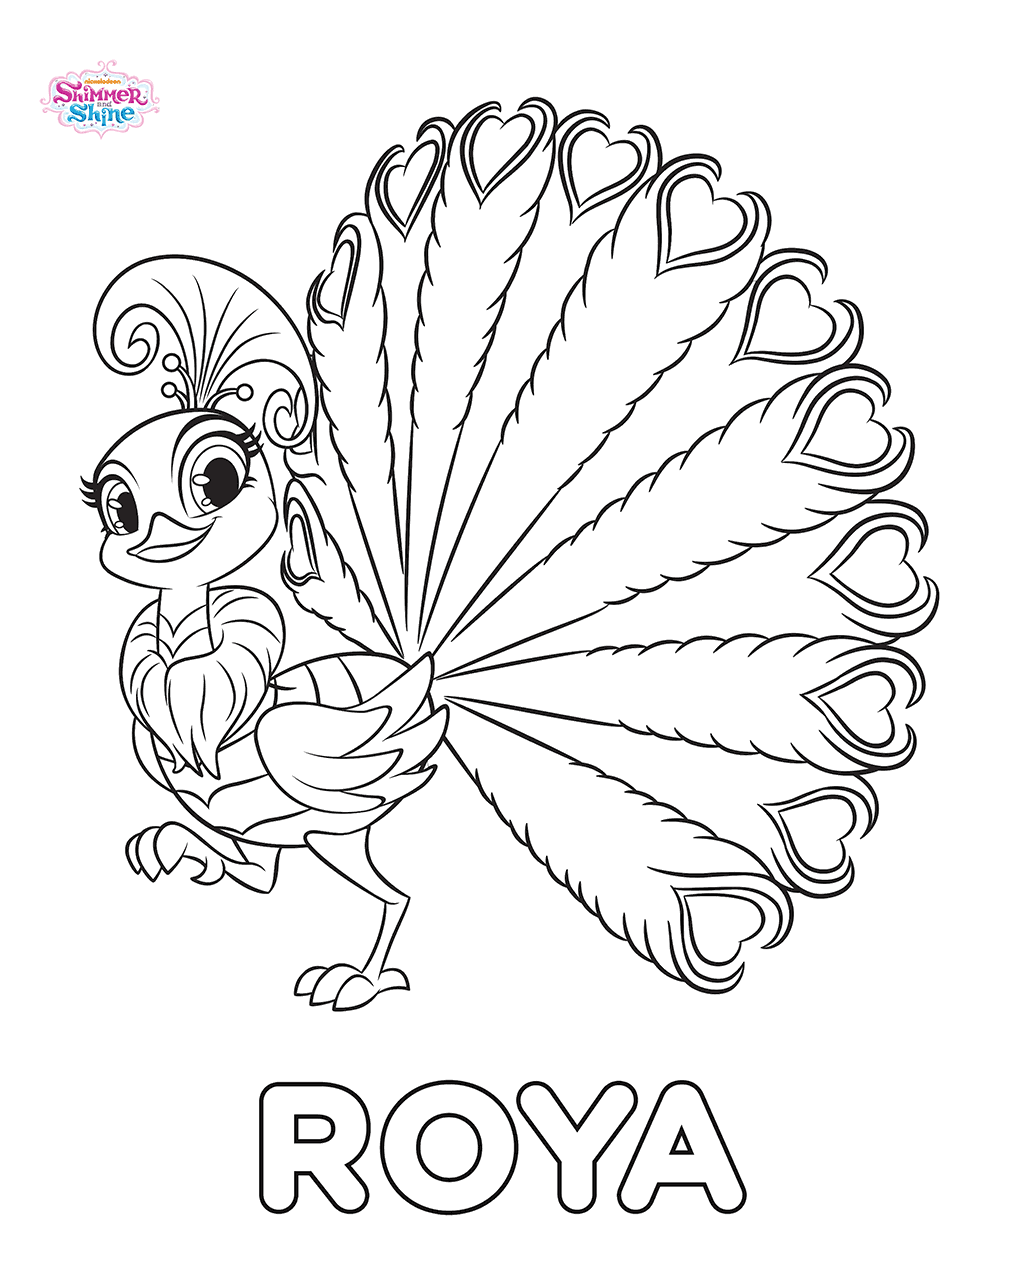 Peacock Roya Shimmer and Shine Coloring Pages